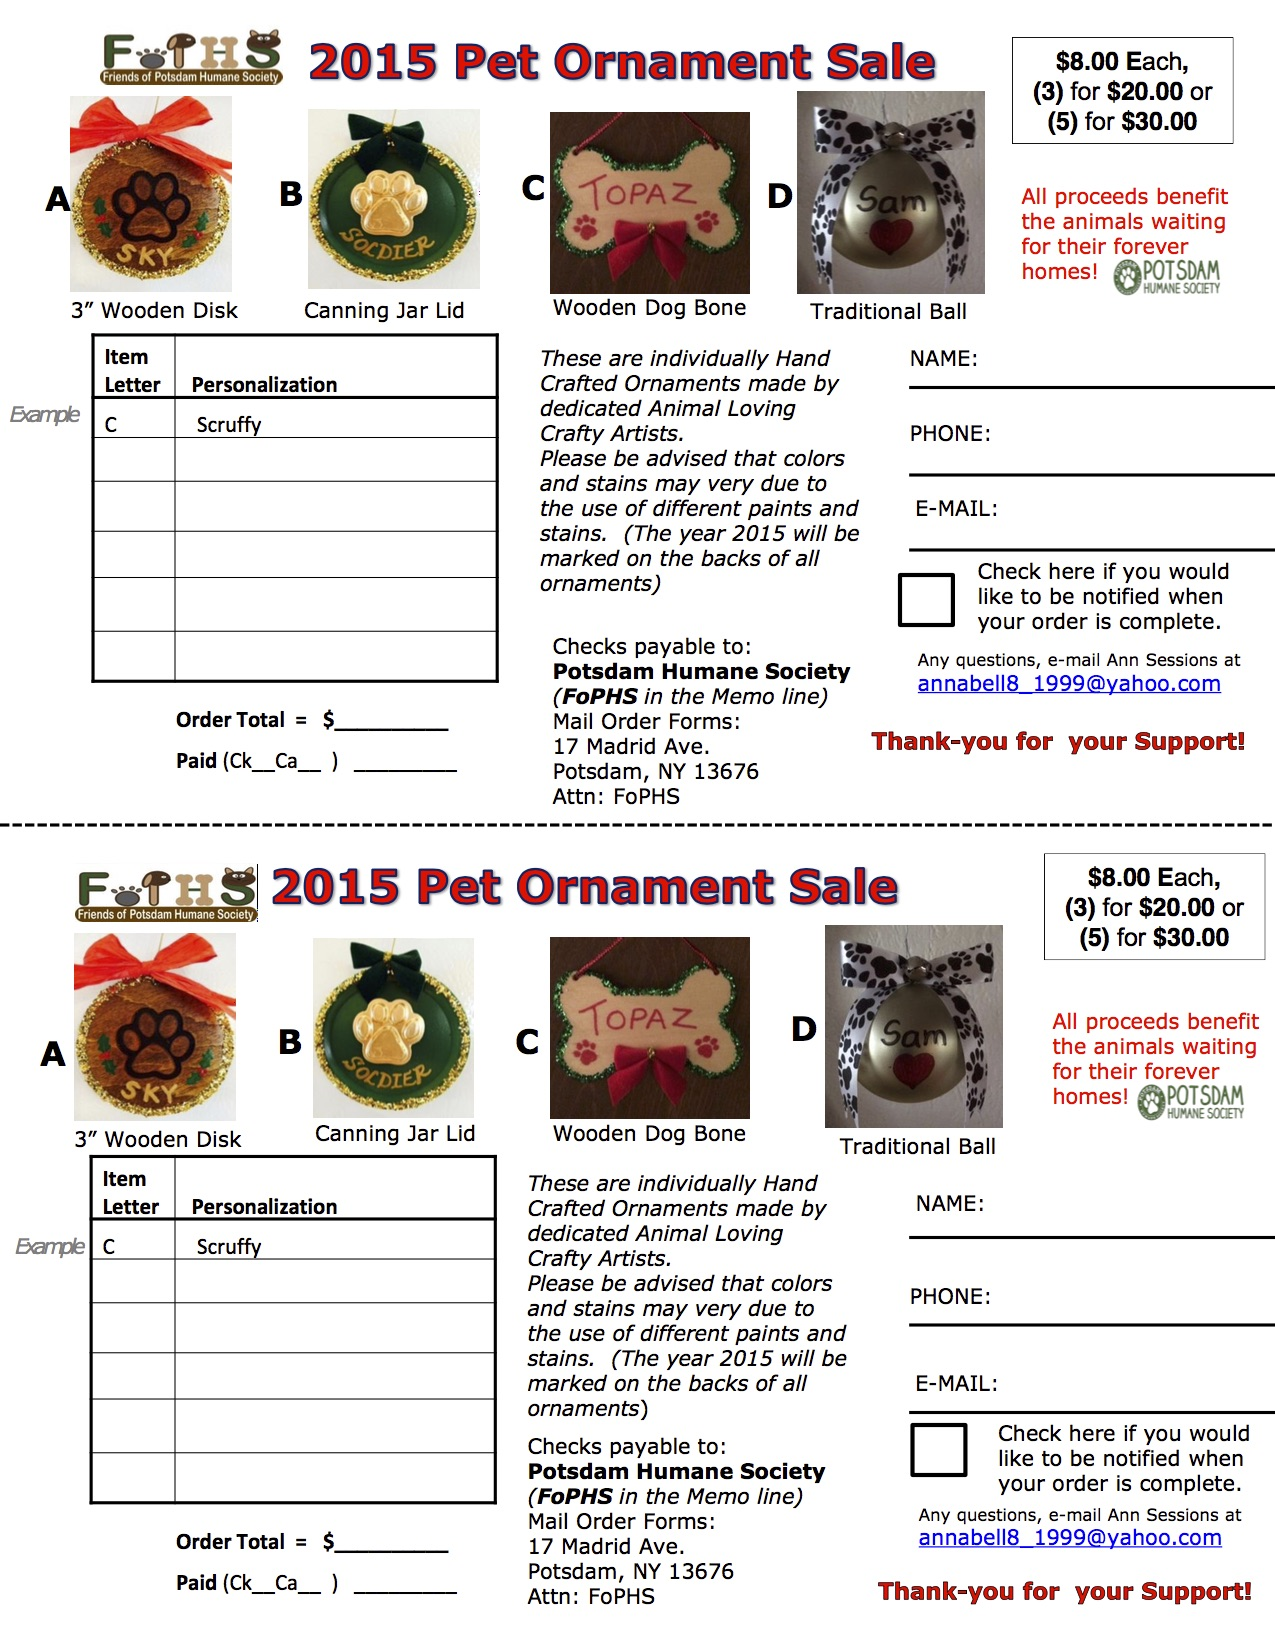 2015 FOPHS Ornament Order Form